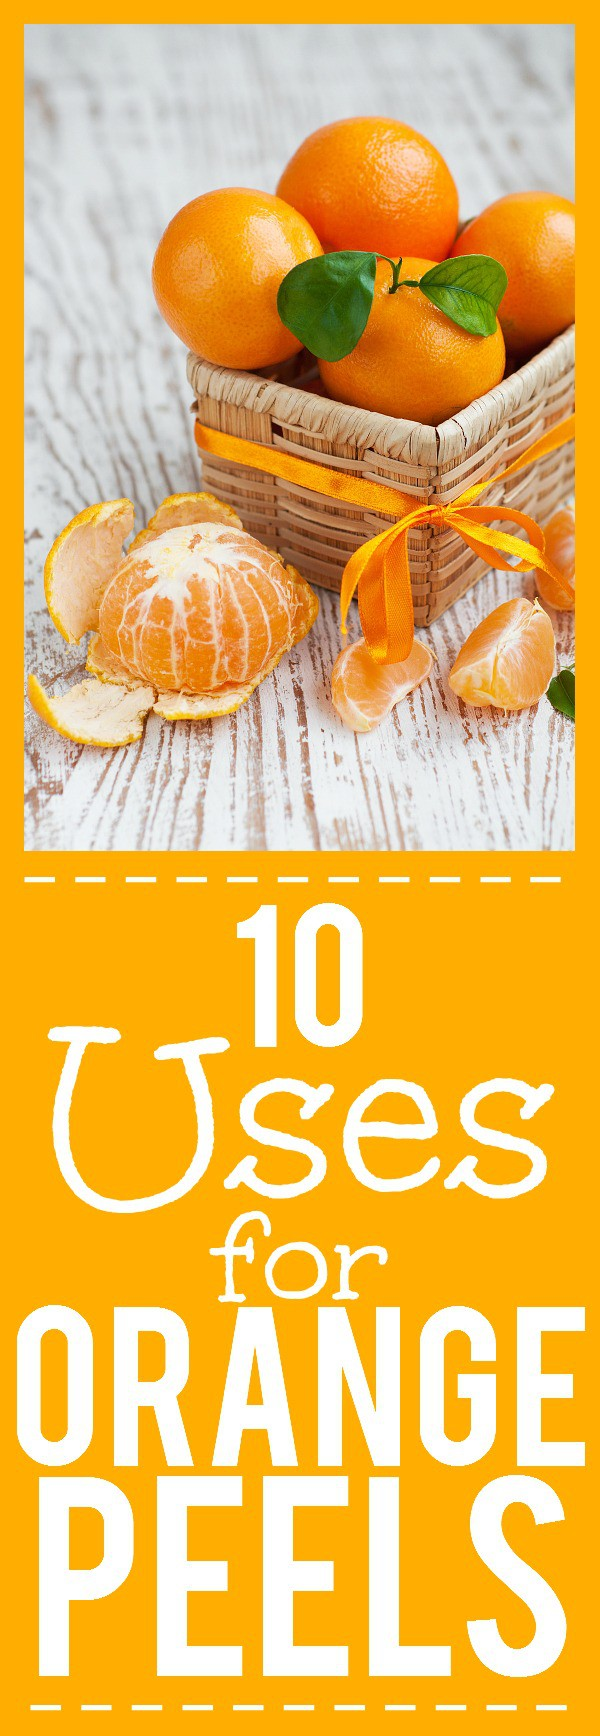 5 Surprising Uses for Orange Peels - Don't throw out your orange rinds! Orange peels have so many uses and you can save money and use the whole fruit with these clever and surprising Uses for Orange Peels. Wow! These are great ways to stay frugal in the kitchen and all around the home!